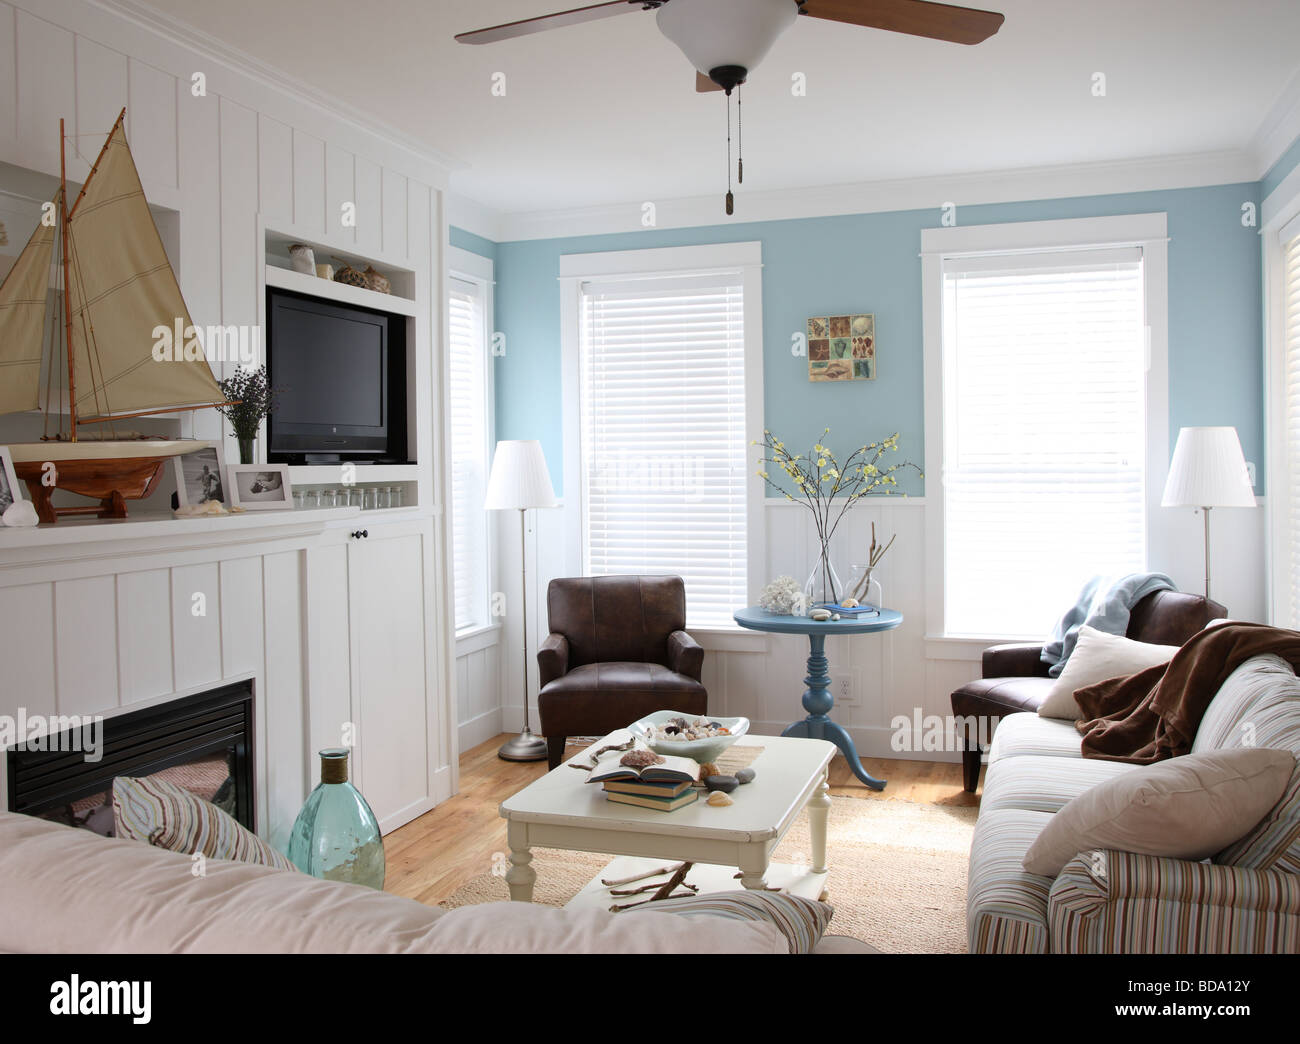 Beach house interior Photo Stock